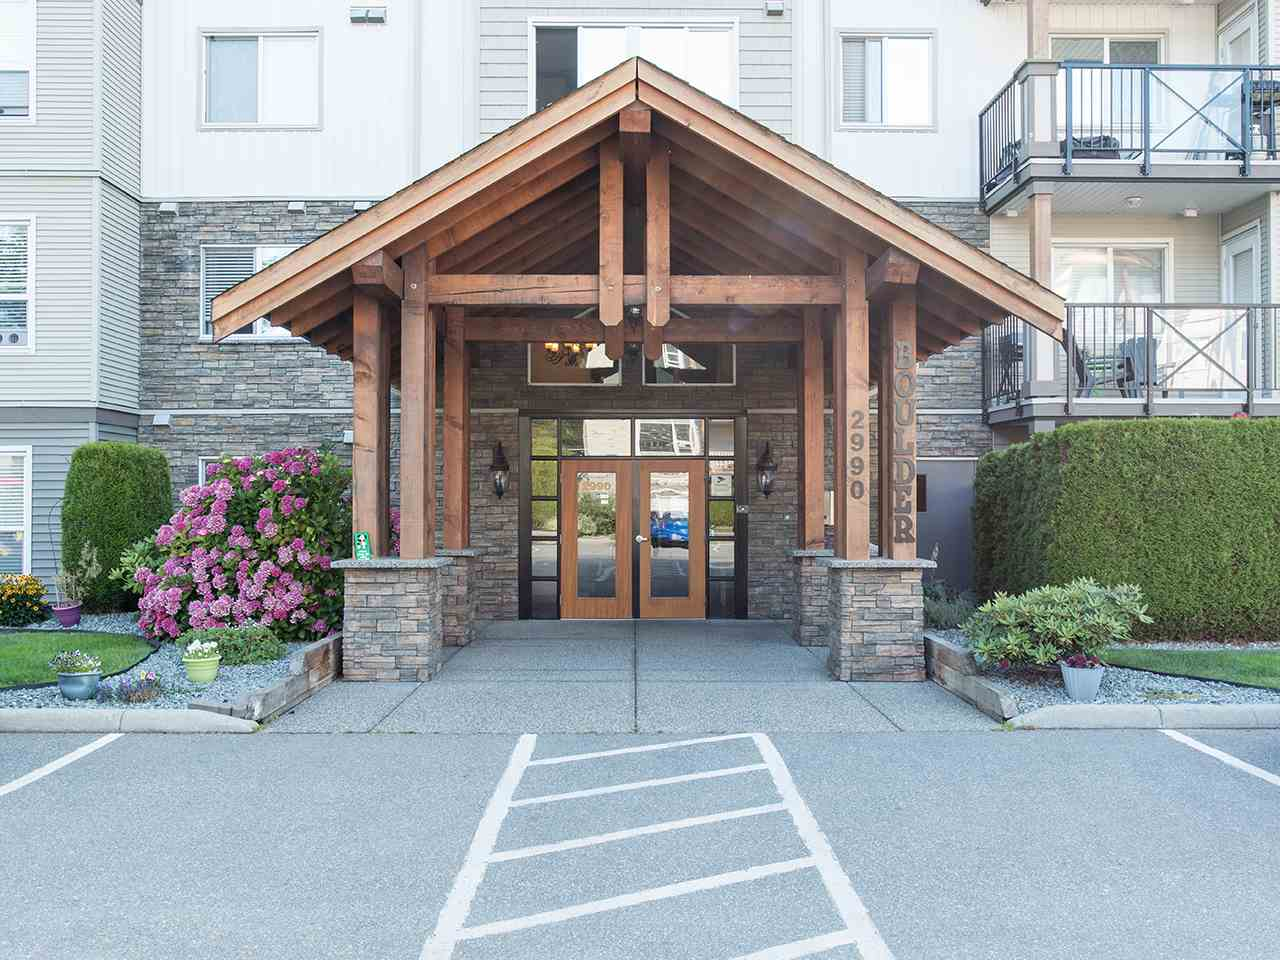 417 2990 BOULDER STREET - Abbotsford West Apartment/Condo for sale, 2 Bedrooms (R2488987) - #1